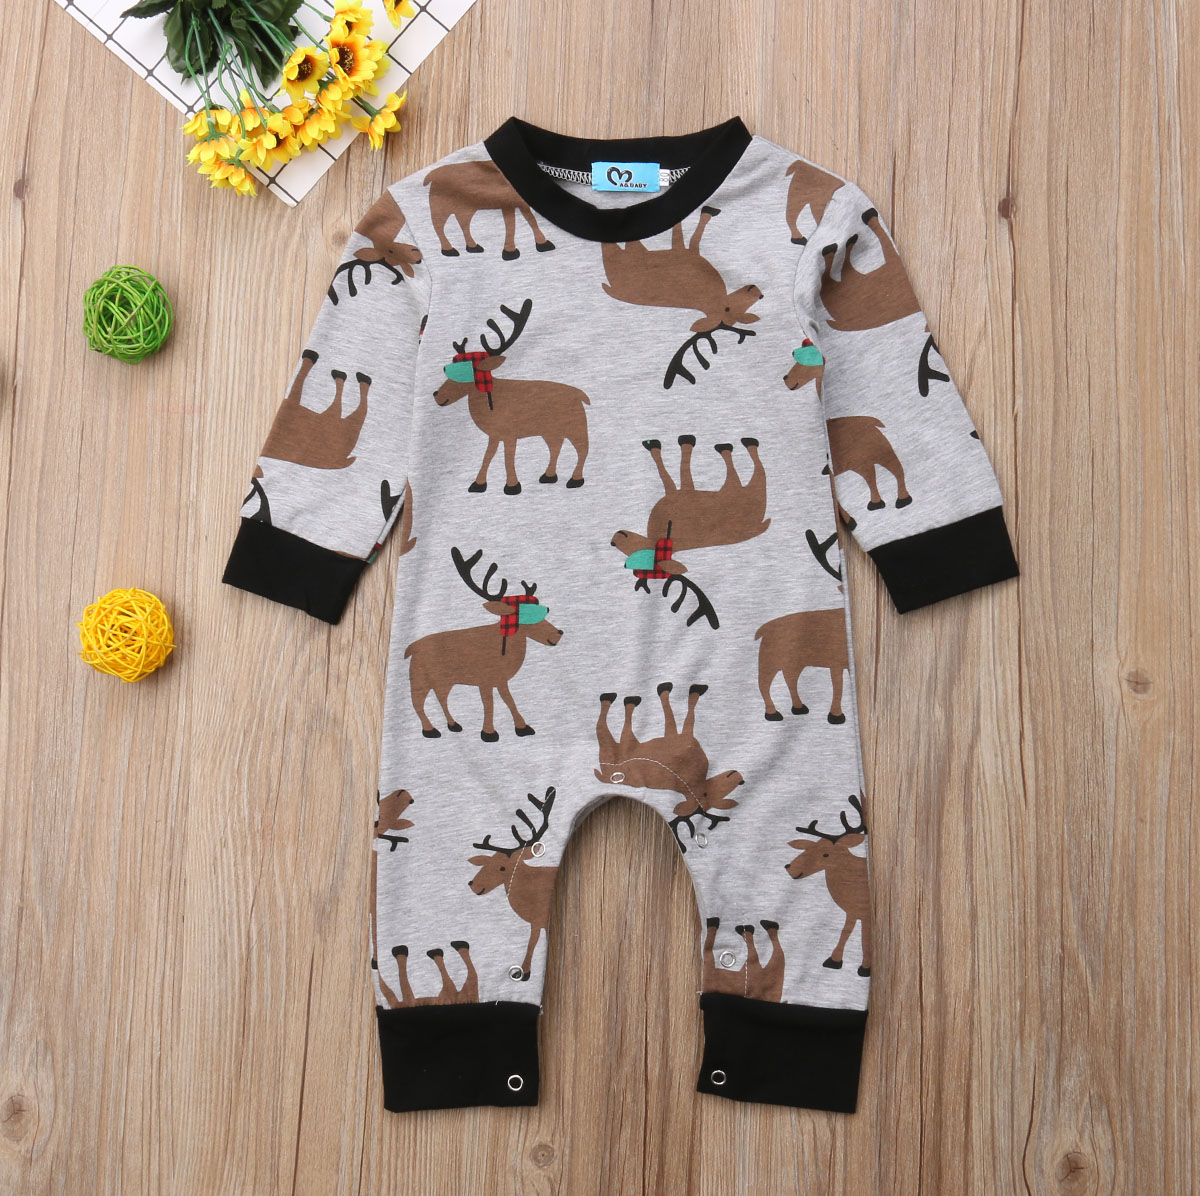 Rompers Bodysuits & One-pieces Newborn Baby Girl Boy Long Sleeve Cartoon Print Romper Jumpsuit Pajamas Outfits Overalls Childrens Winter For Newborns @35